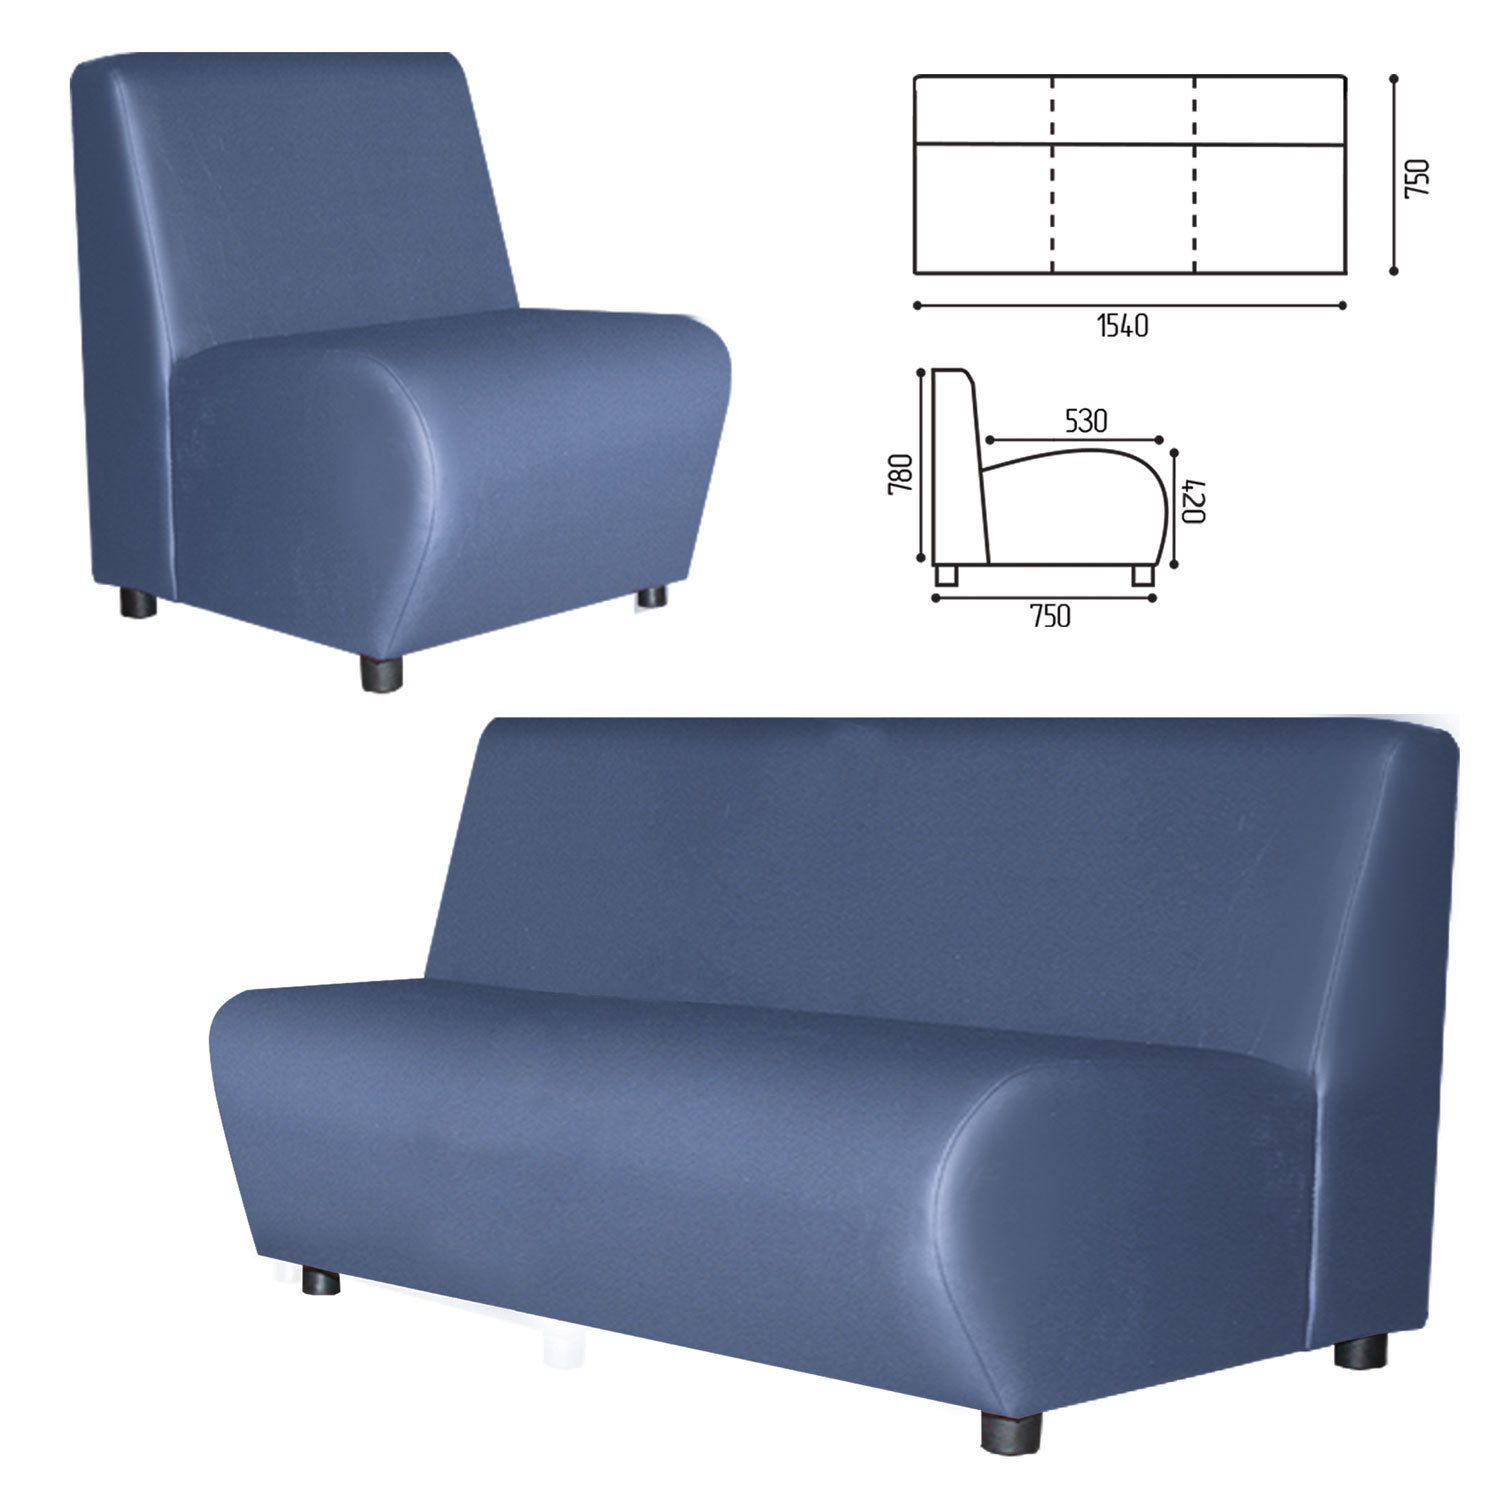 """GARTLEX / Sofa soft three-seater """"Cloud"""", """"V-600"""", 1540x750x780 mm, without armrests, eco-leather, blue"""